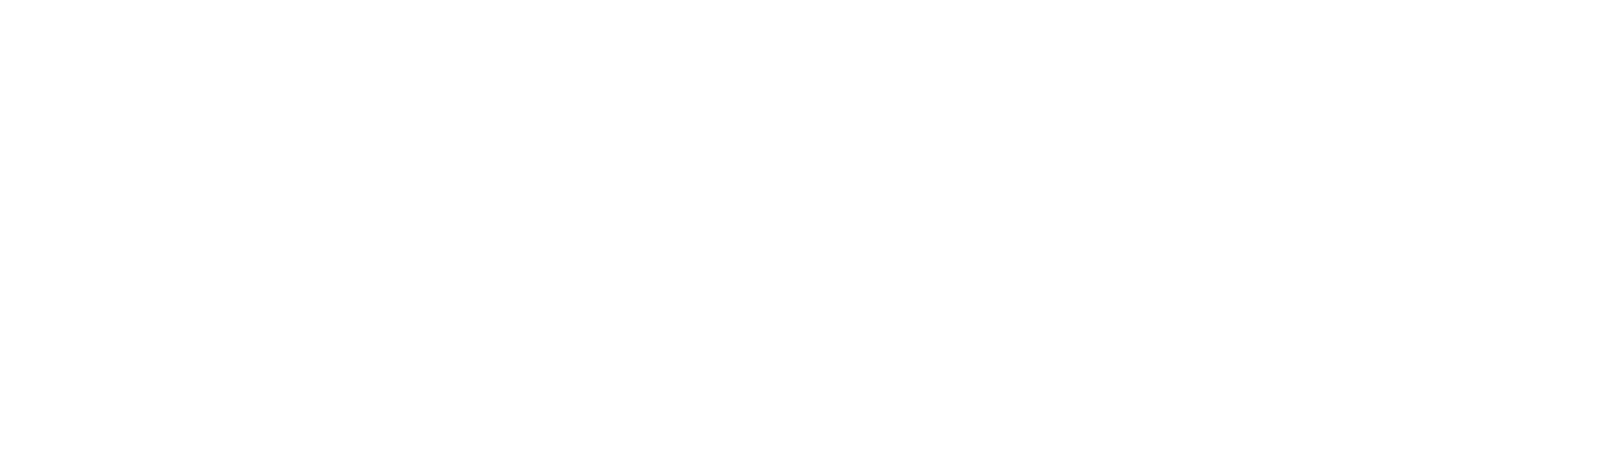 center-for-action-and-contemplation